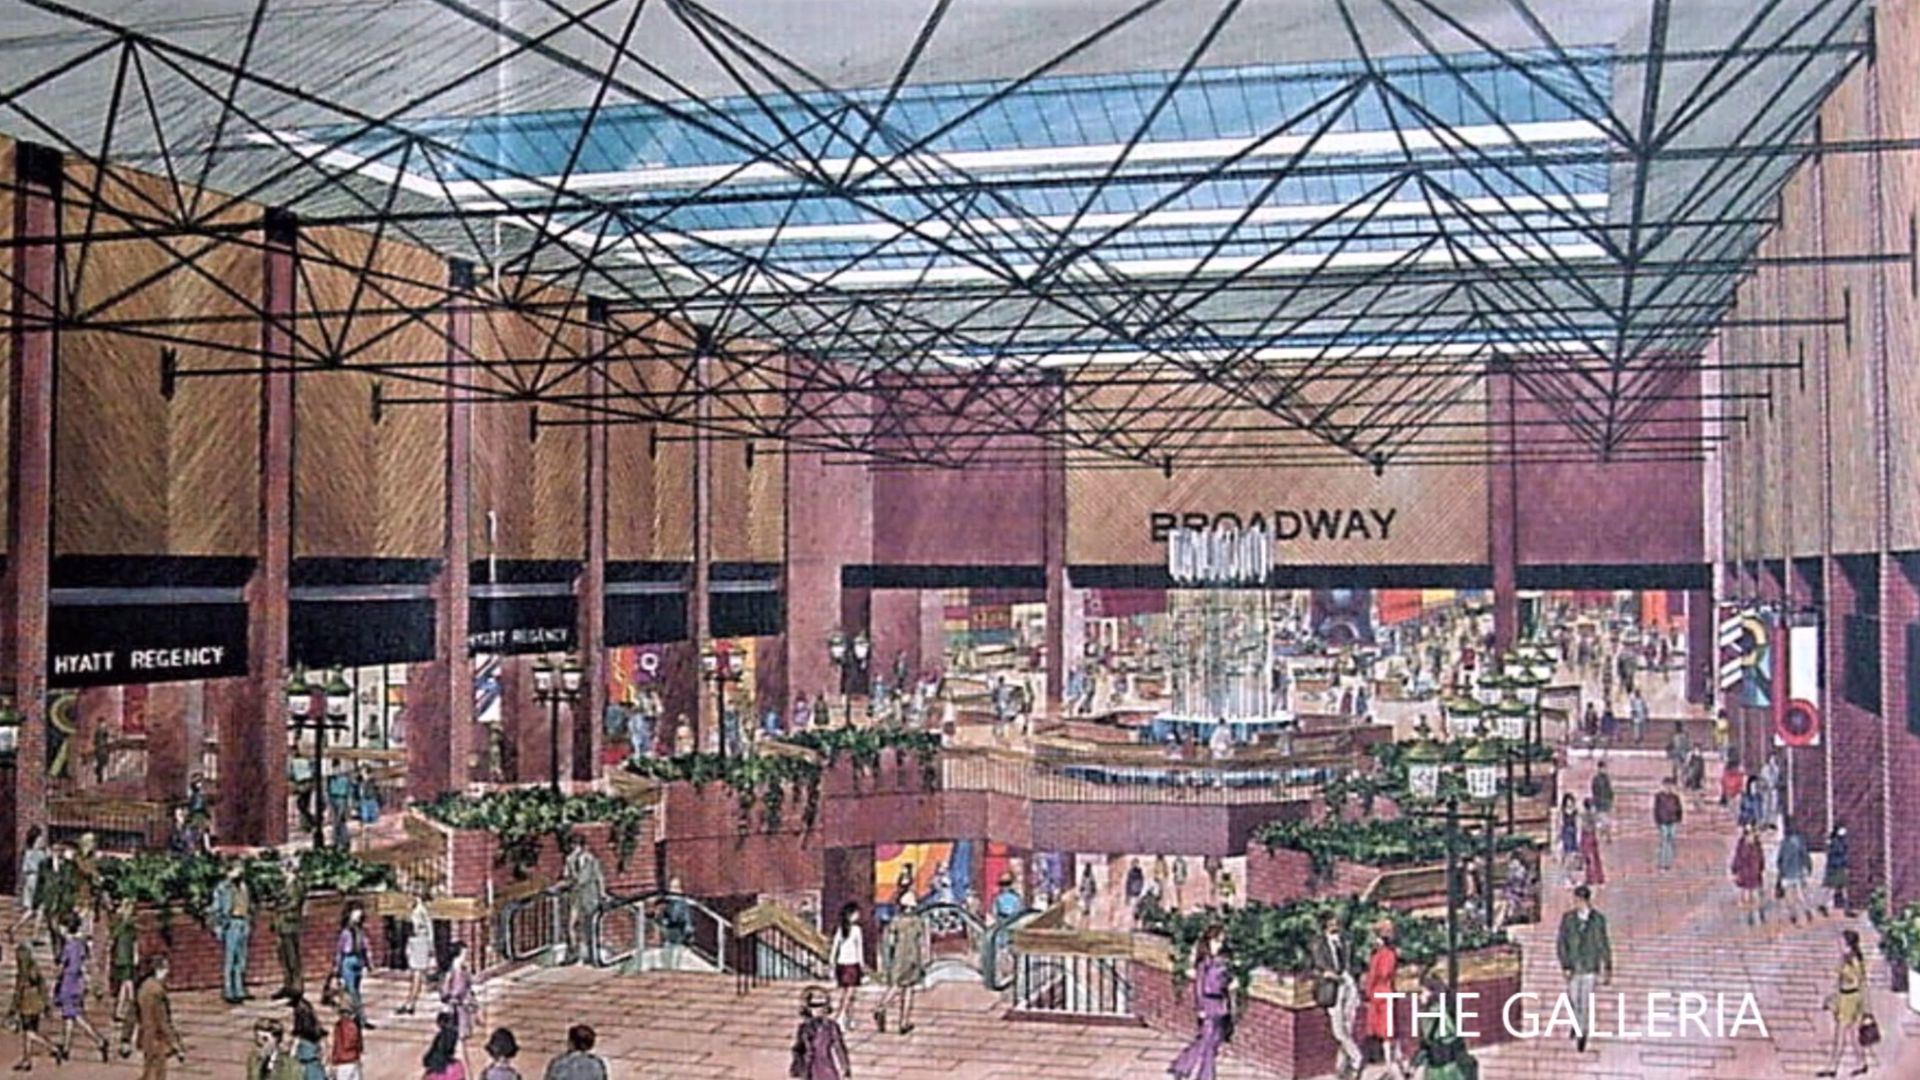 Broadway Plaza the Galleria